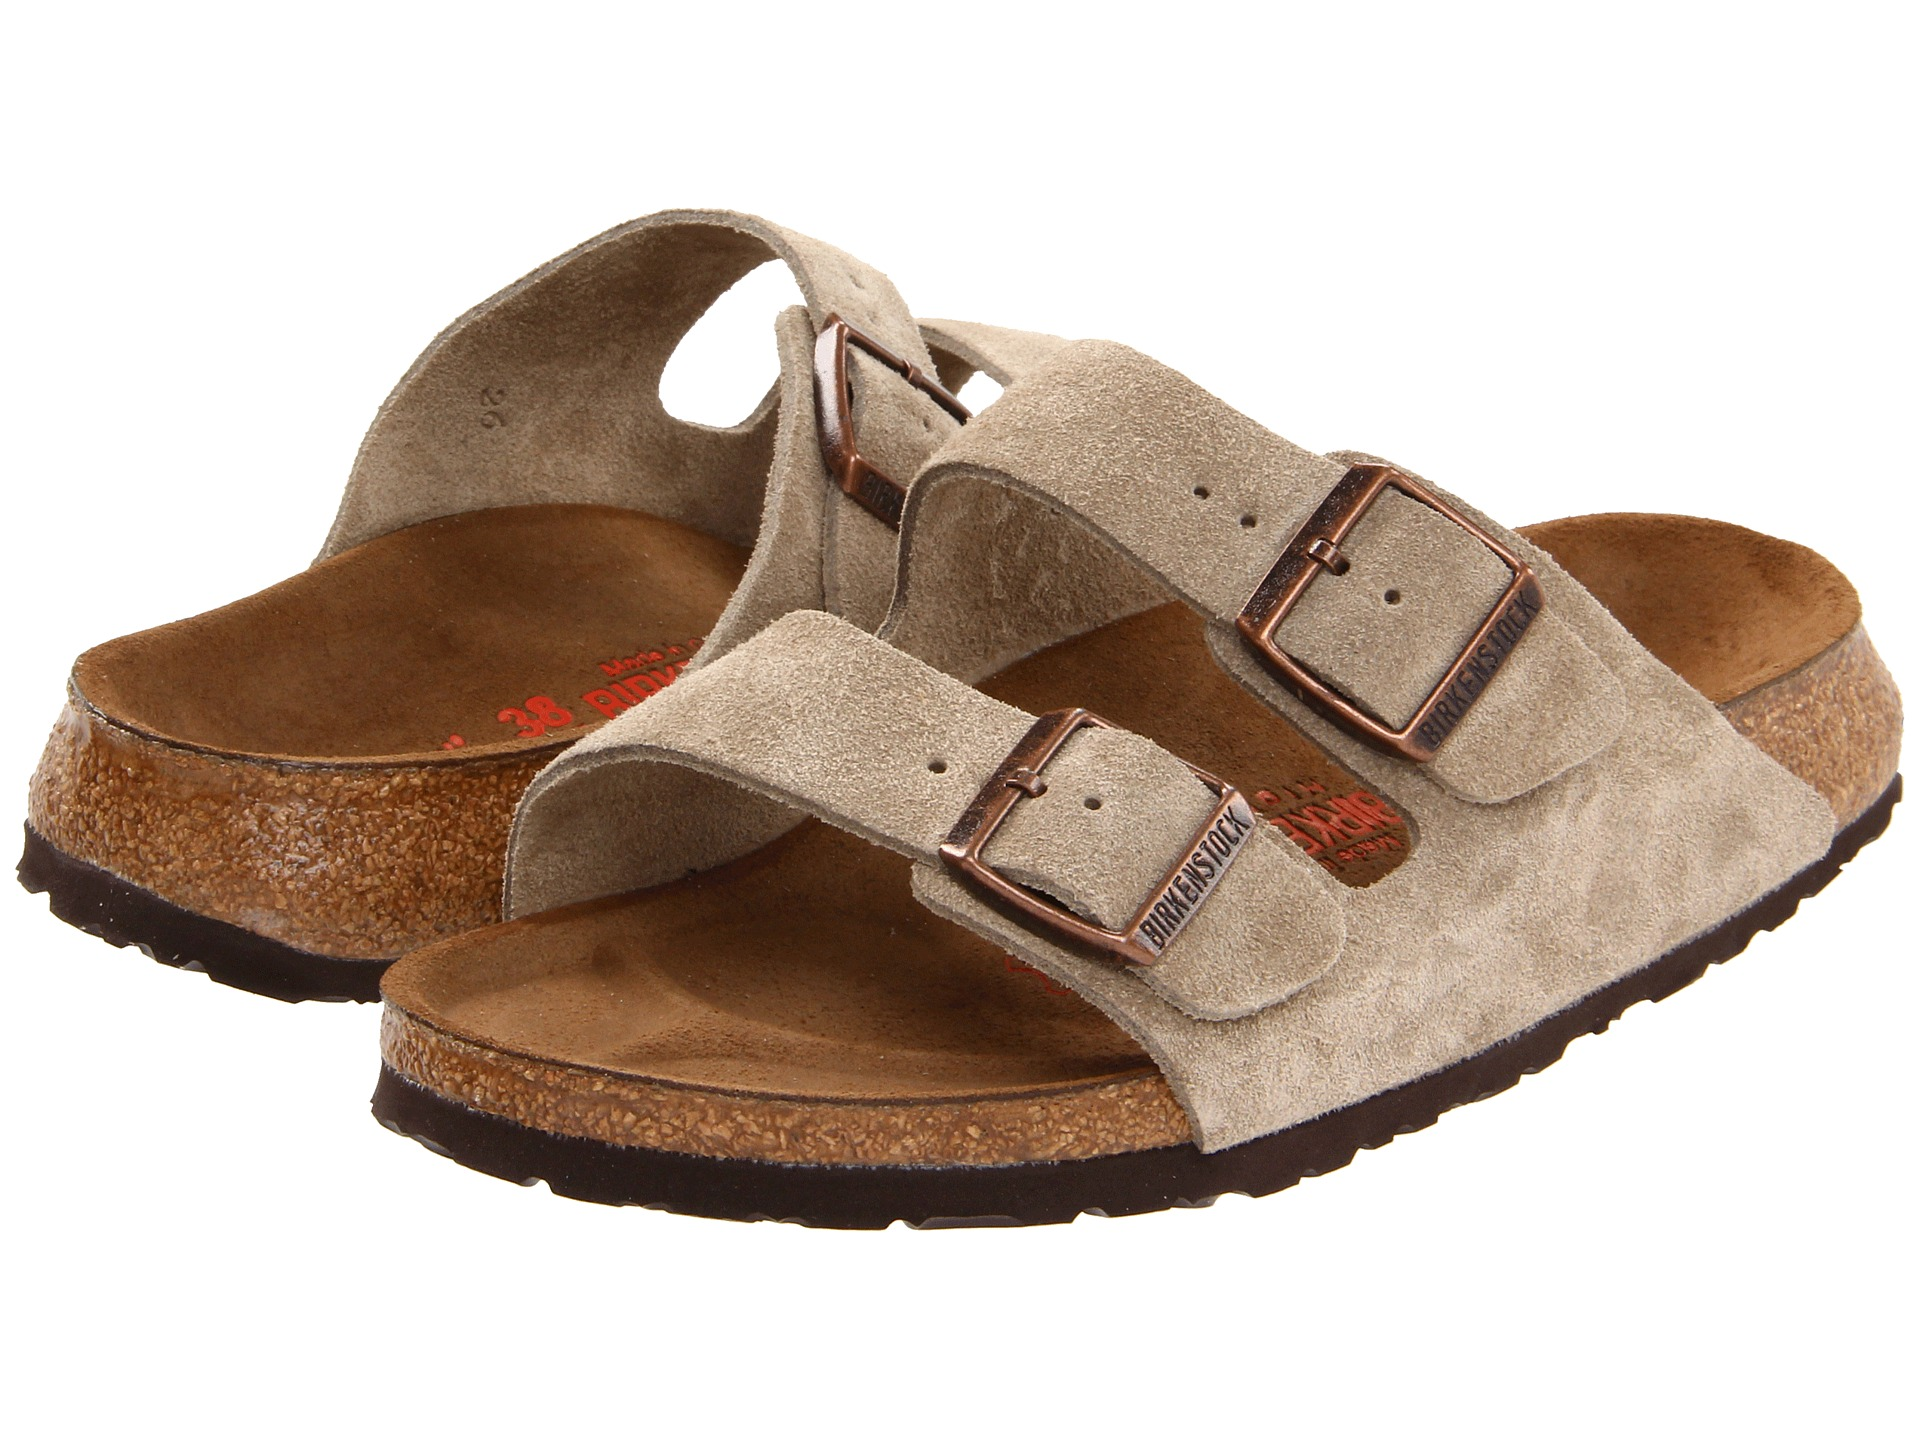 Shoes That Have High Arch Support